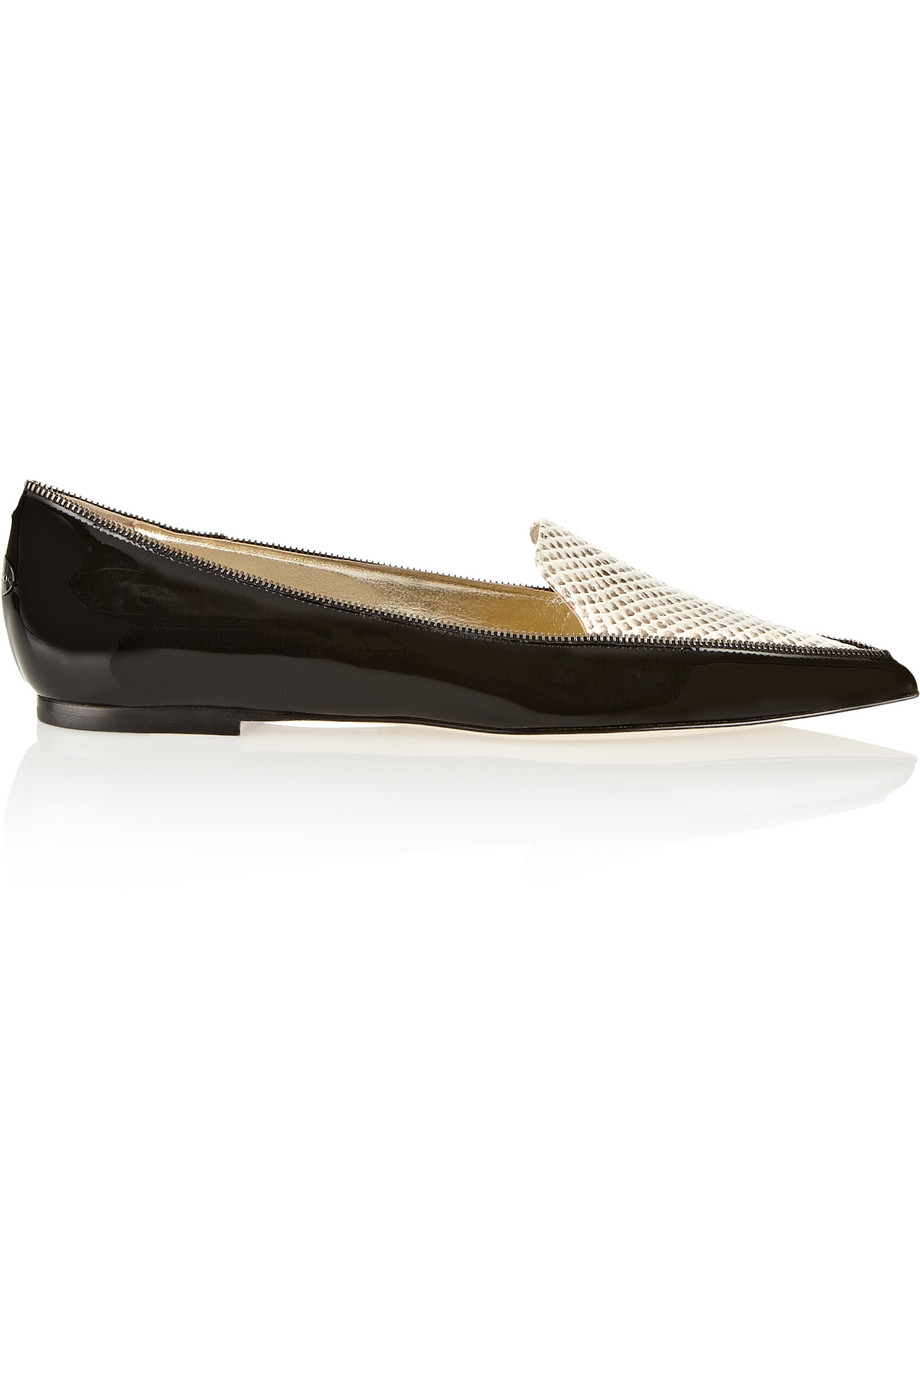 Jimmy Choo Guild Patent-Leather and Snake-Effect Leather Point-Toe Flats, Black, Women's US Size: 4.5, Size: 35